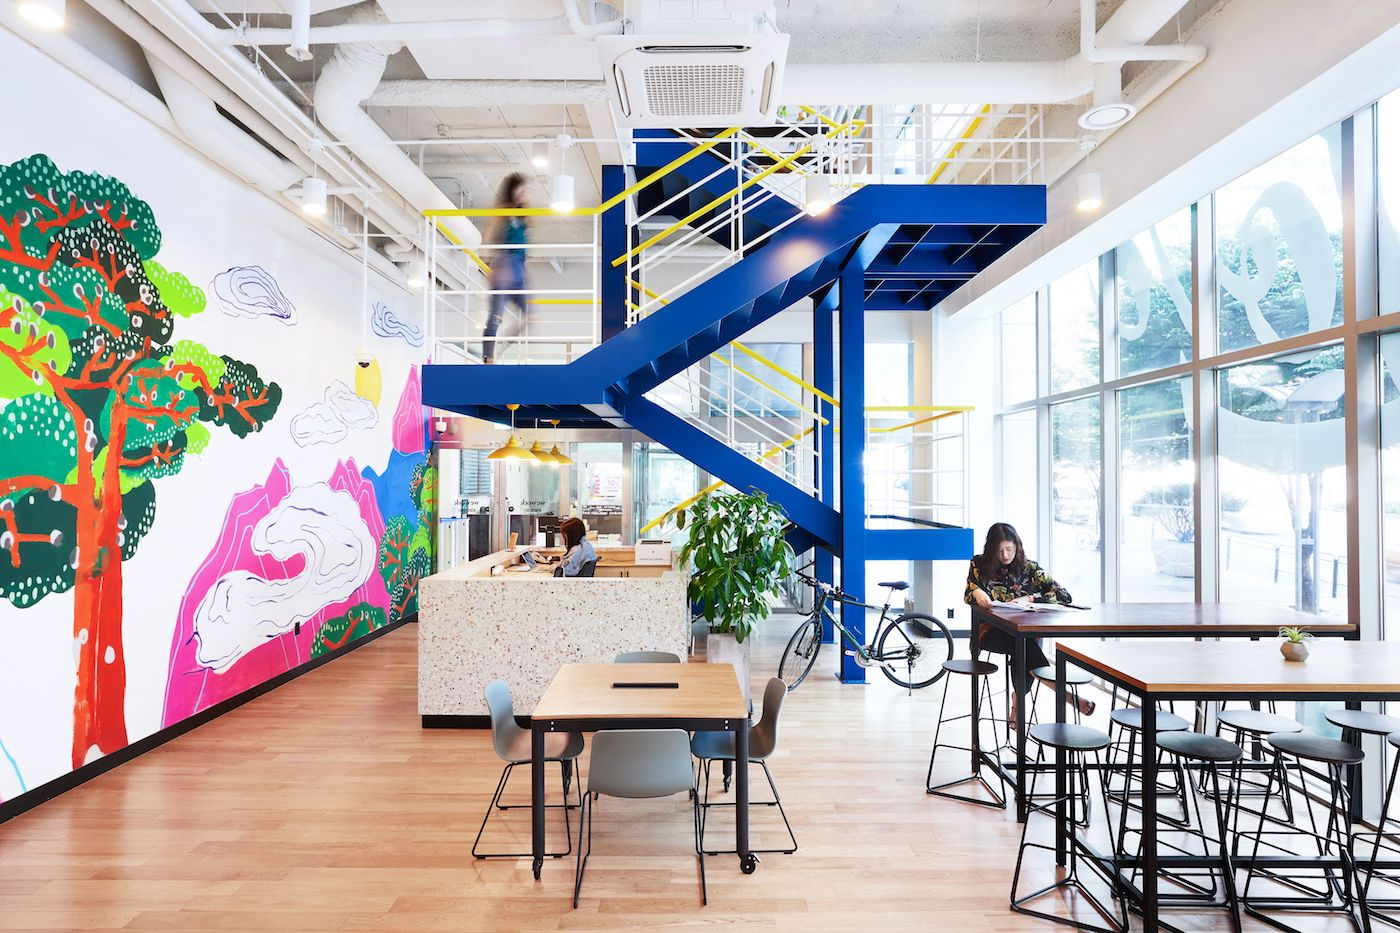 WeWork Seolleung in Seoul, South Korea. Photographs by The We Company